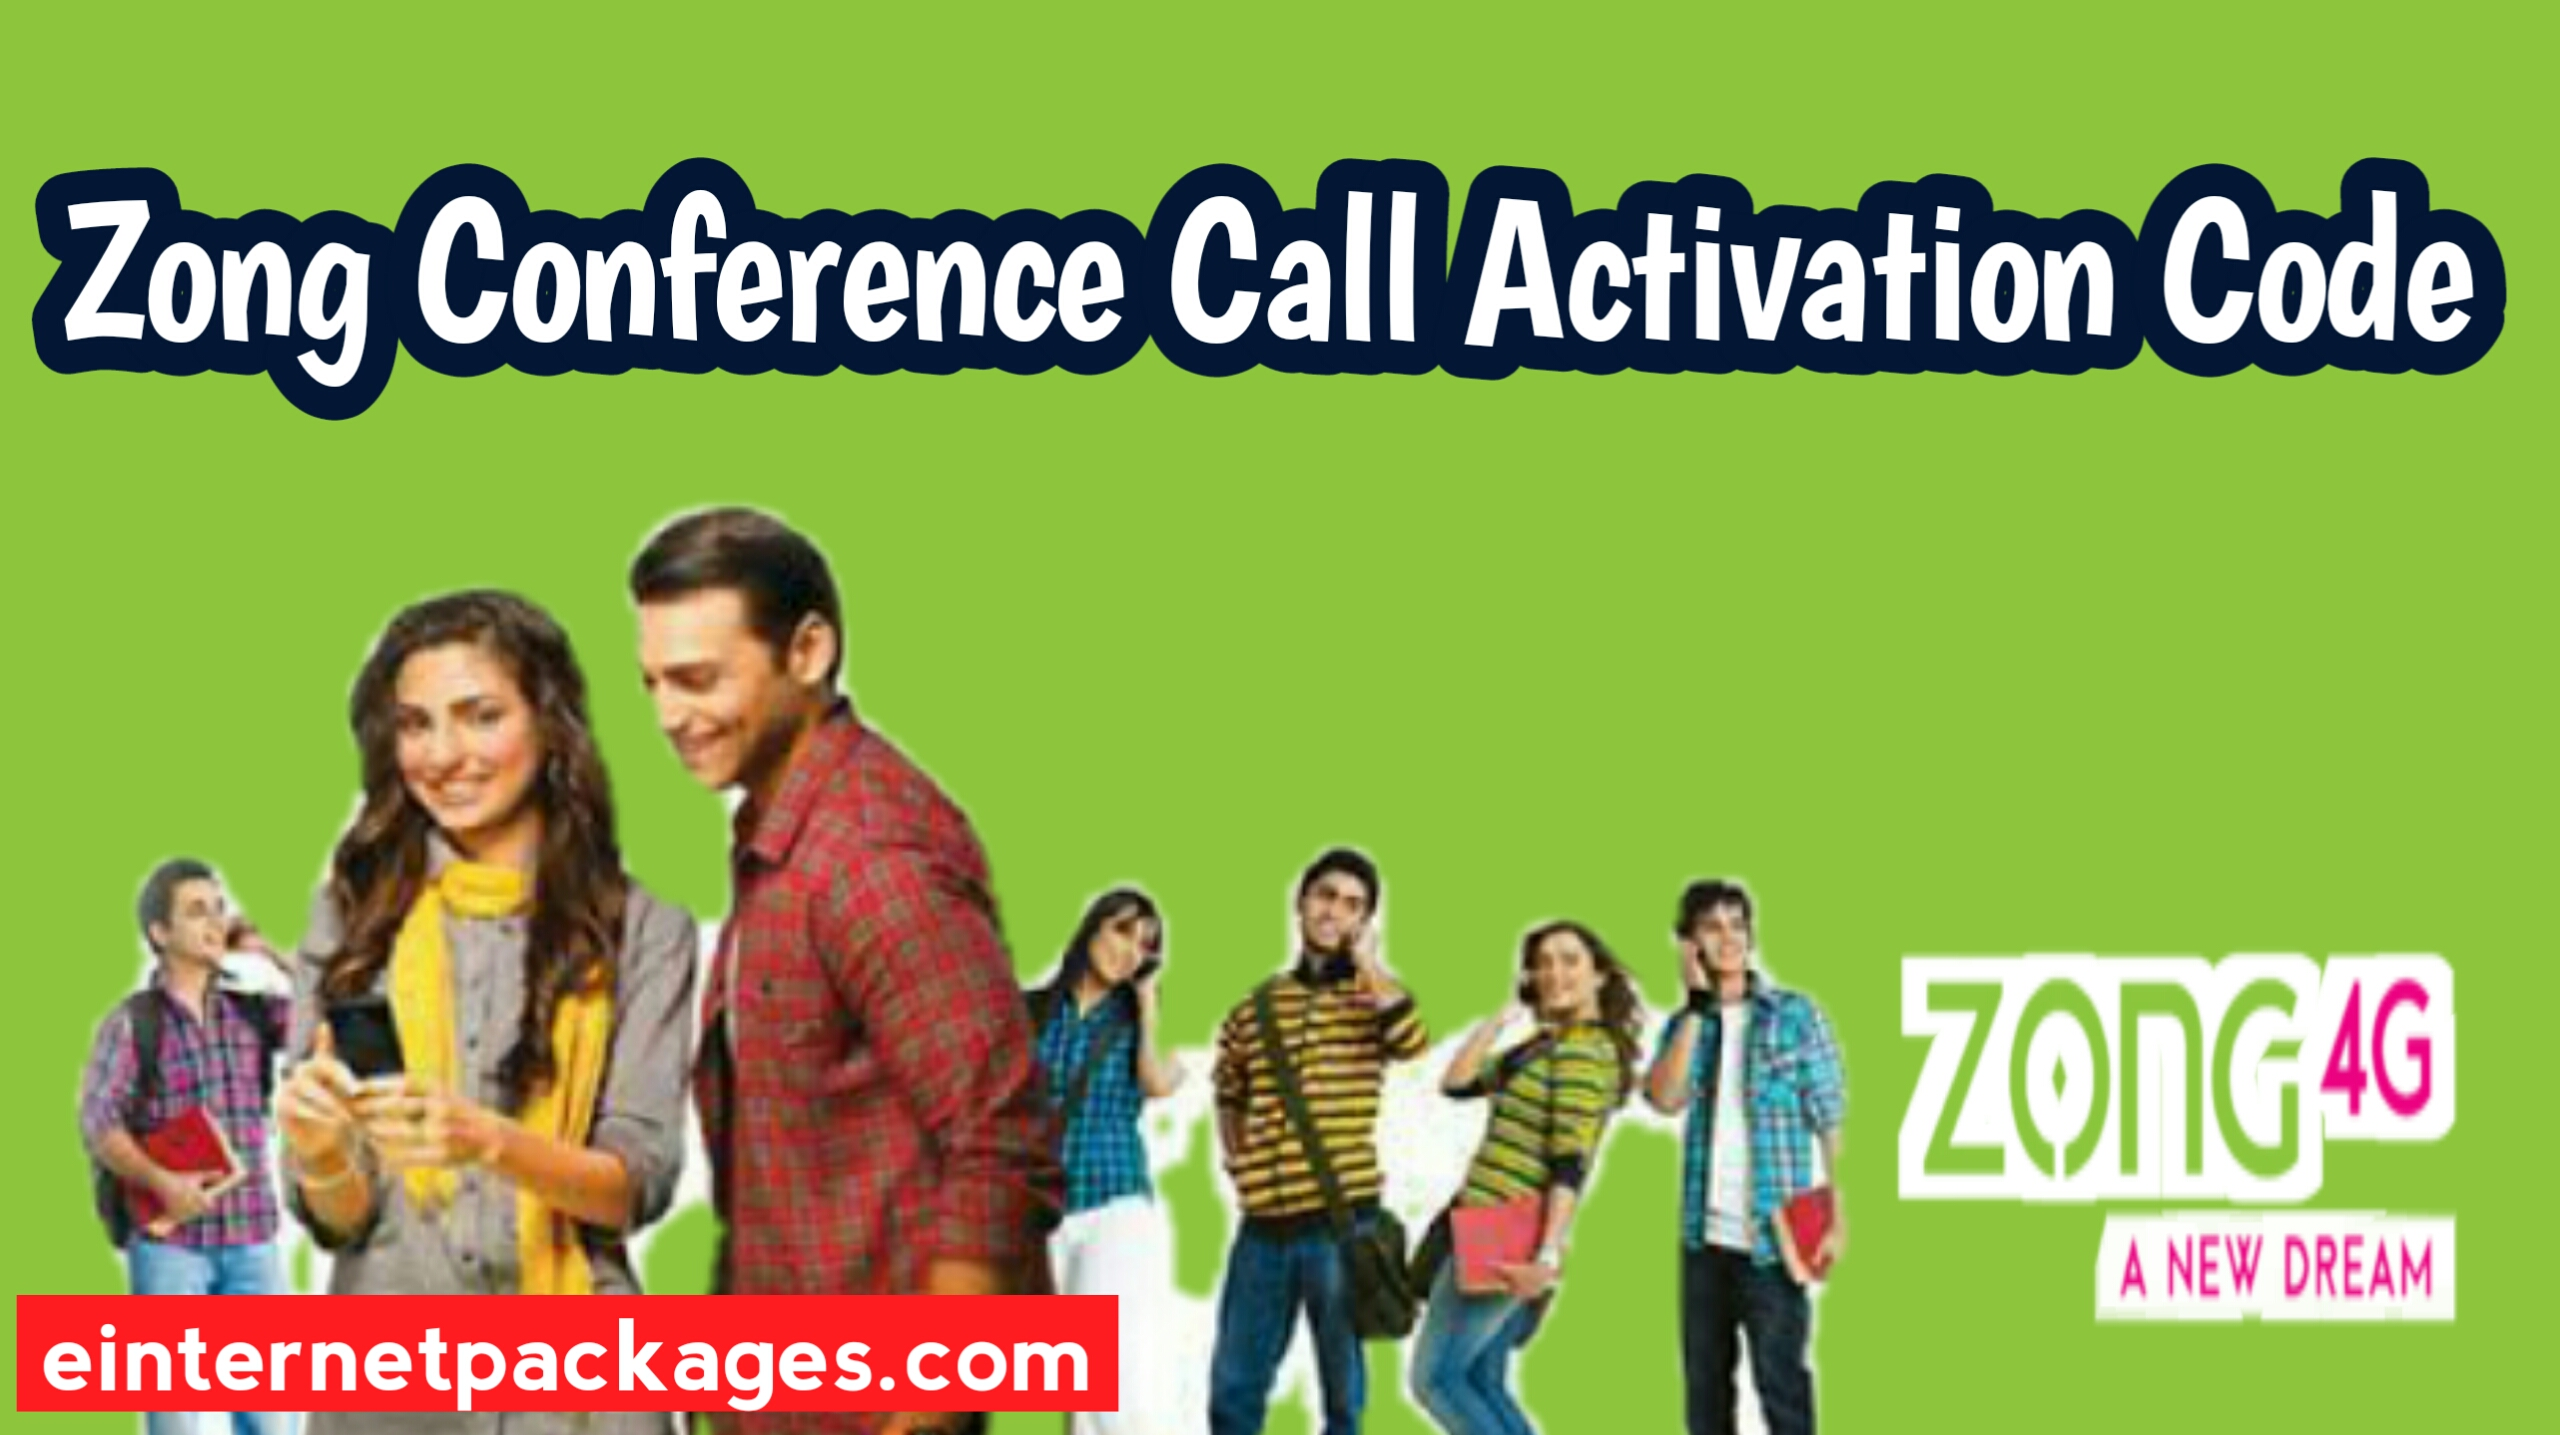 Conference Call Zong